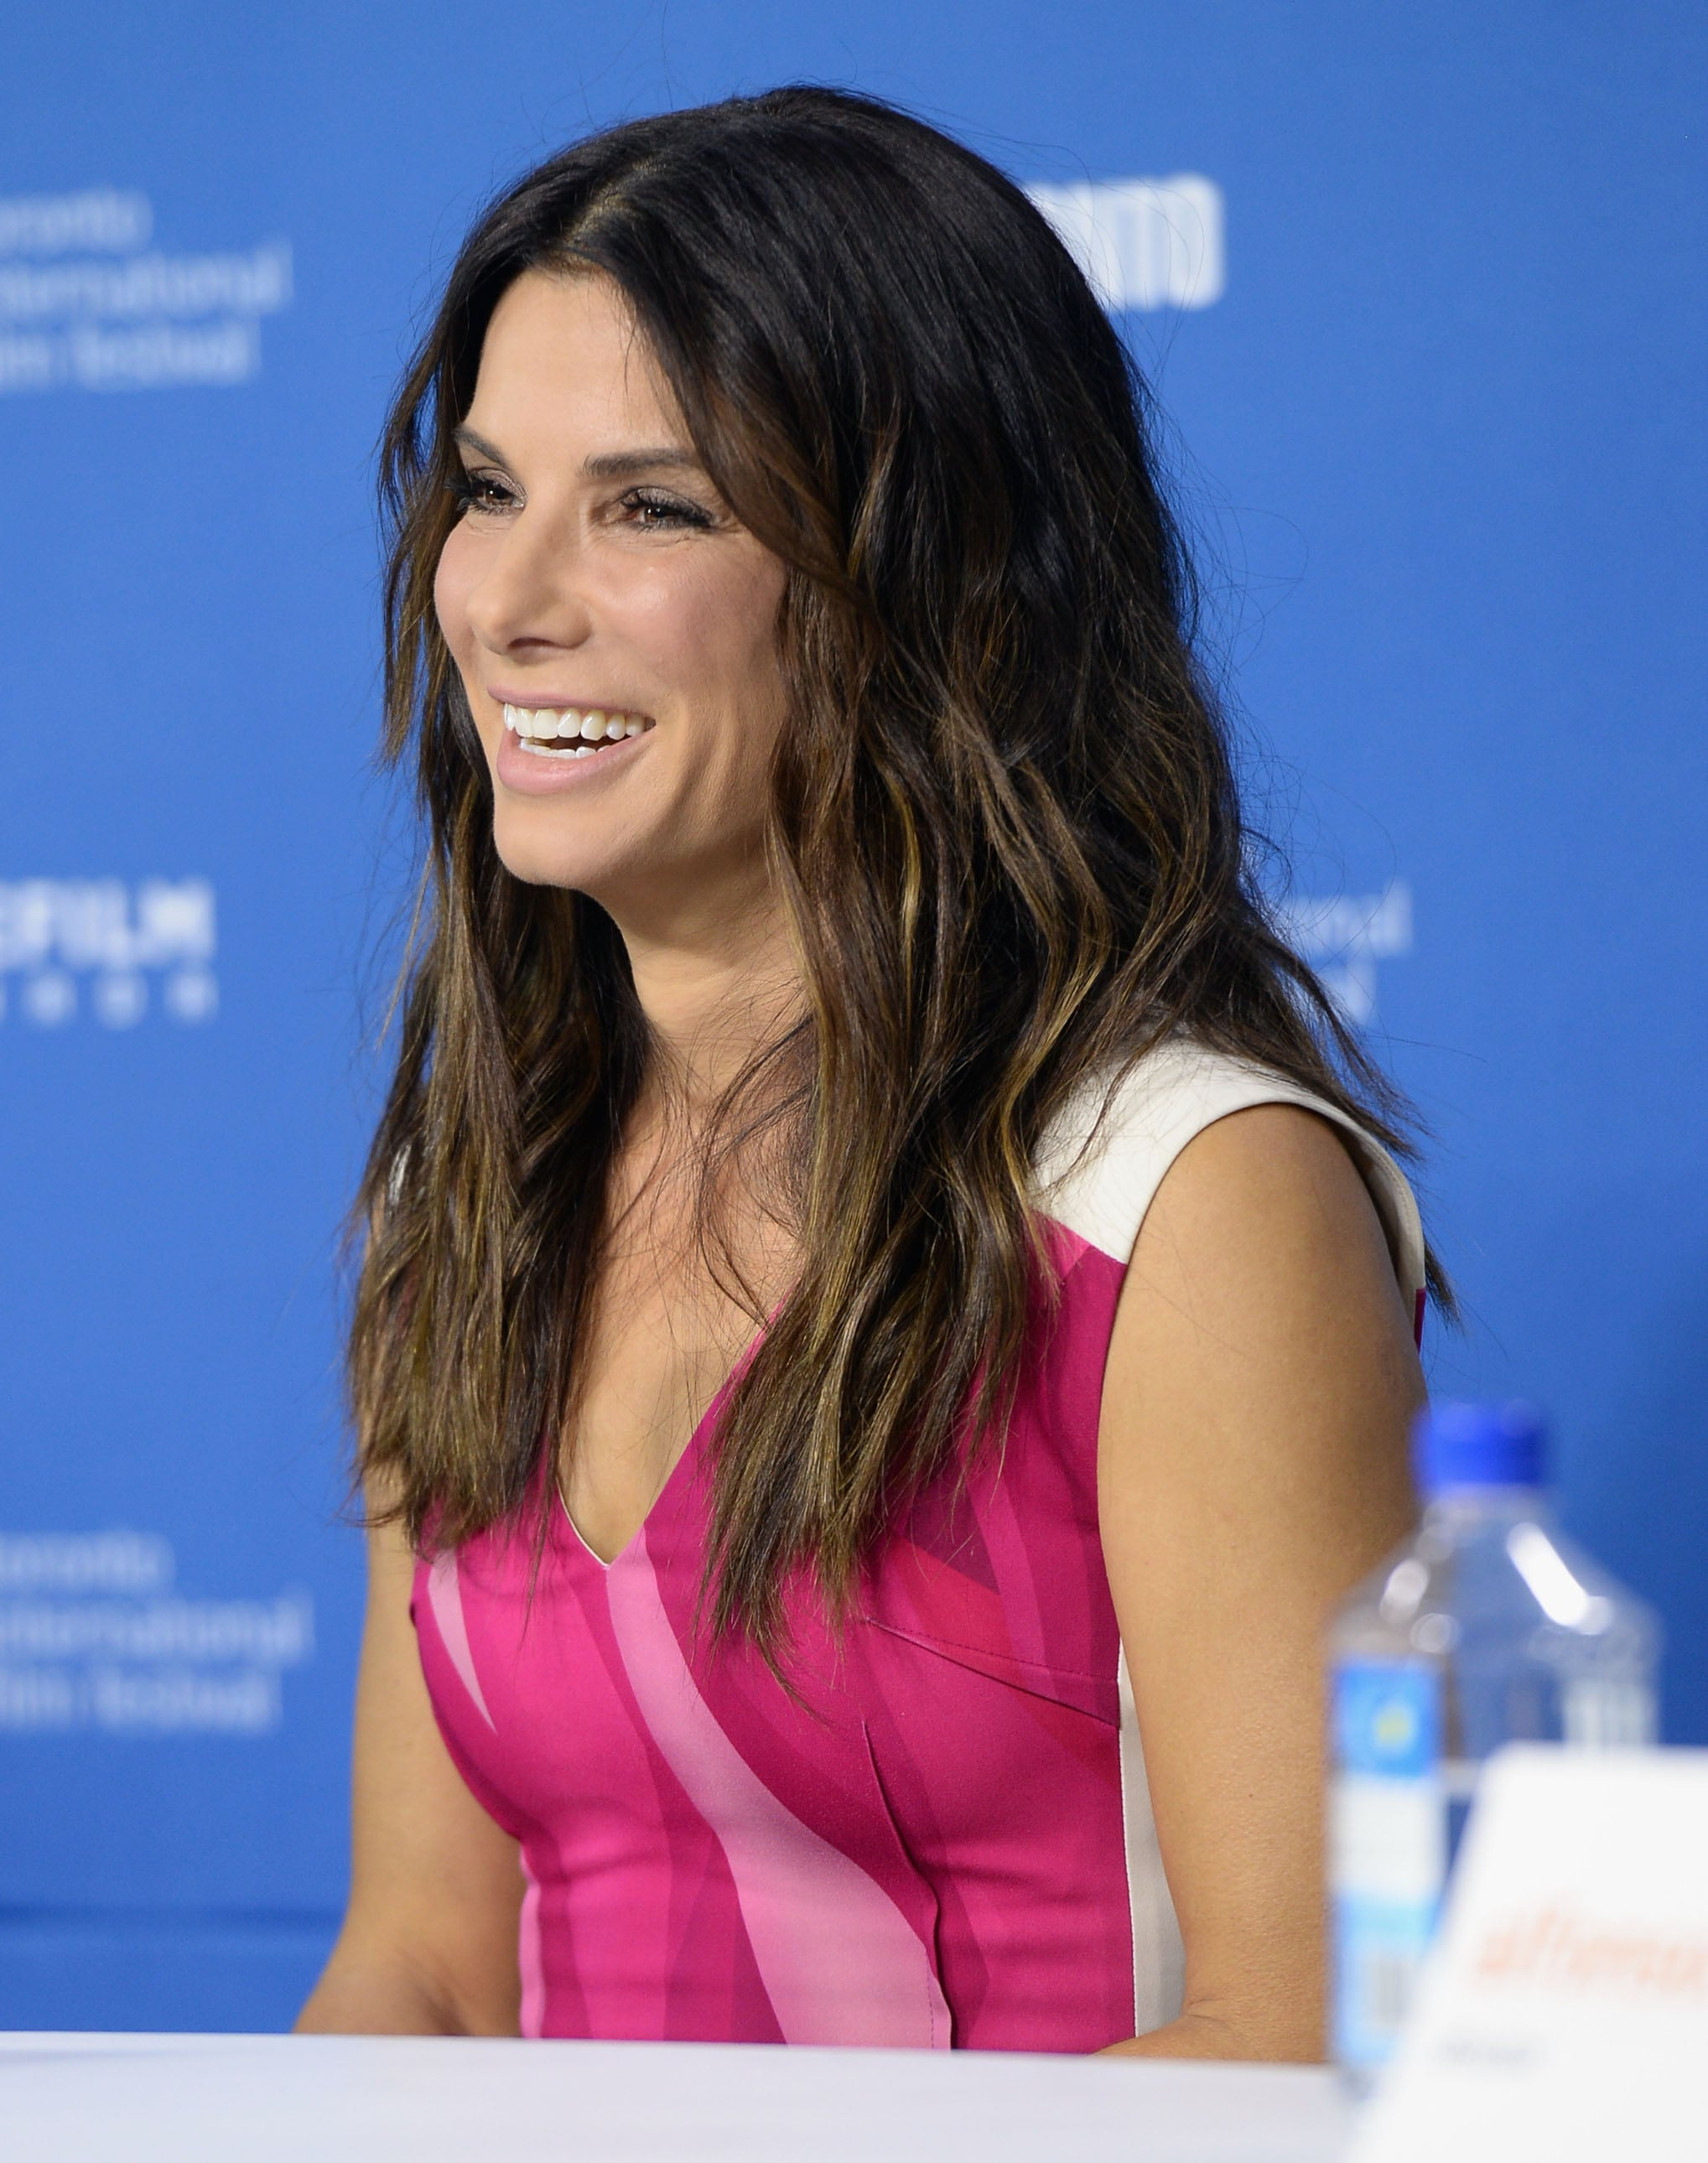 Sandra Bullock glowed during the Gravity press conference.